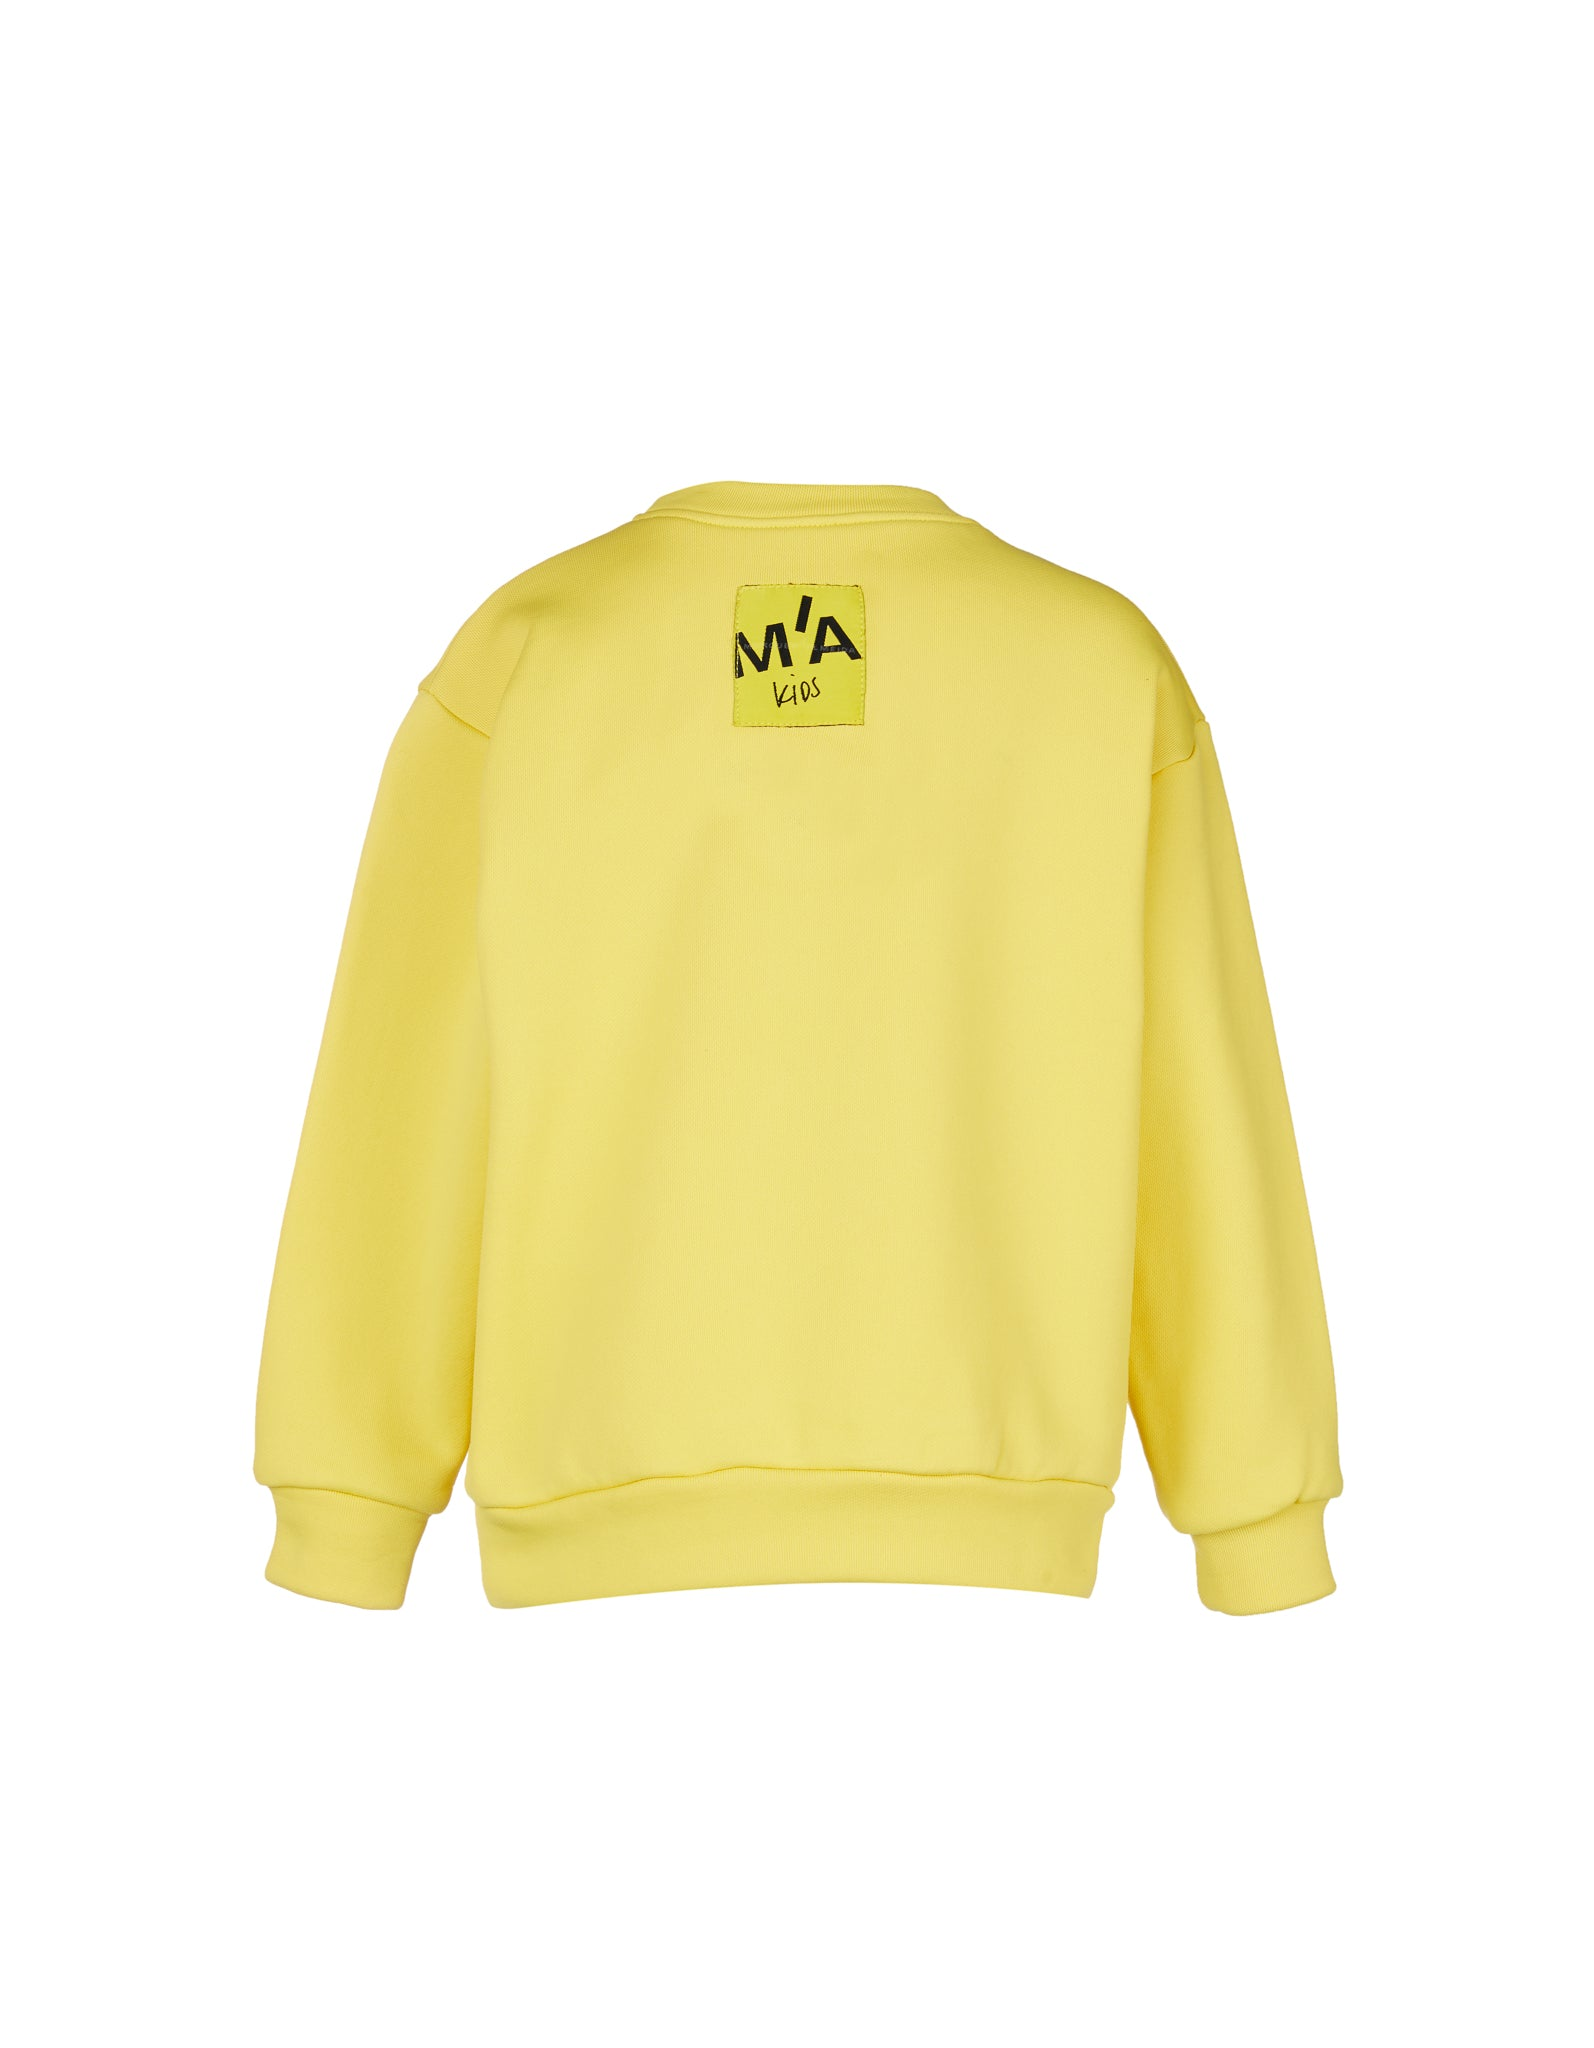 EMBROIDERED CREW NECK IN YELLOW